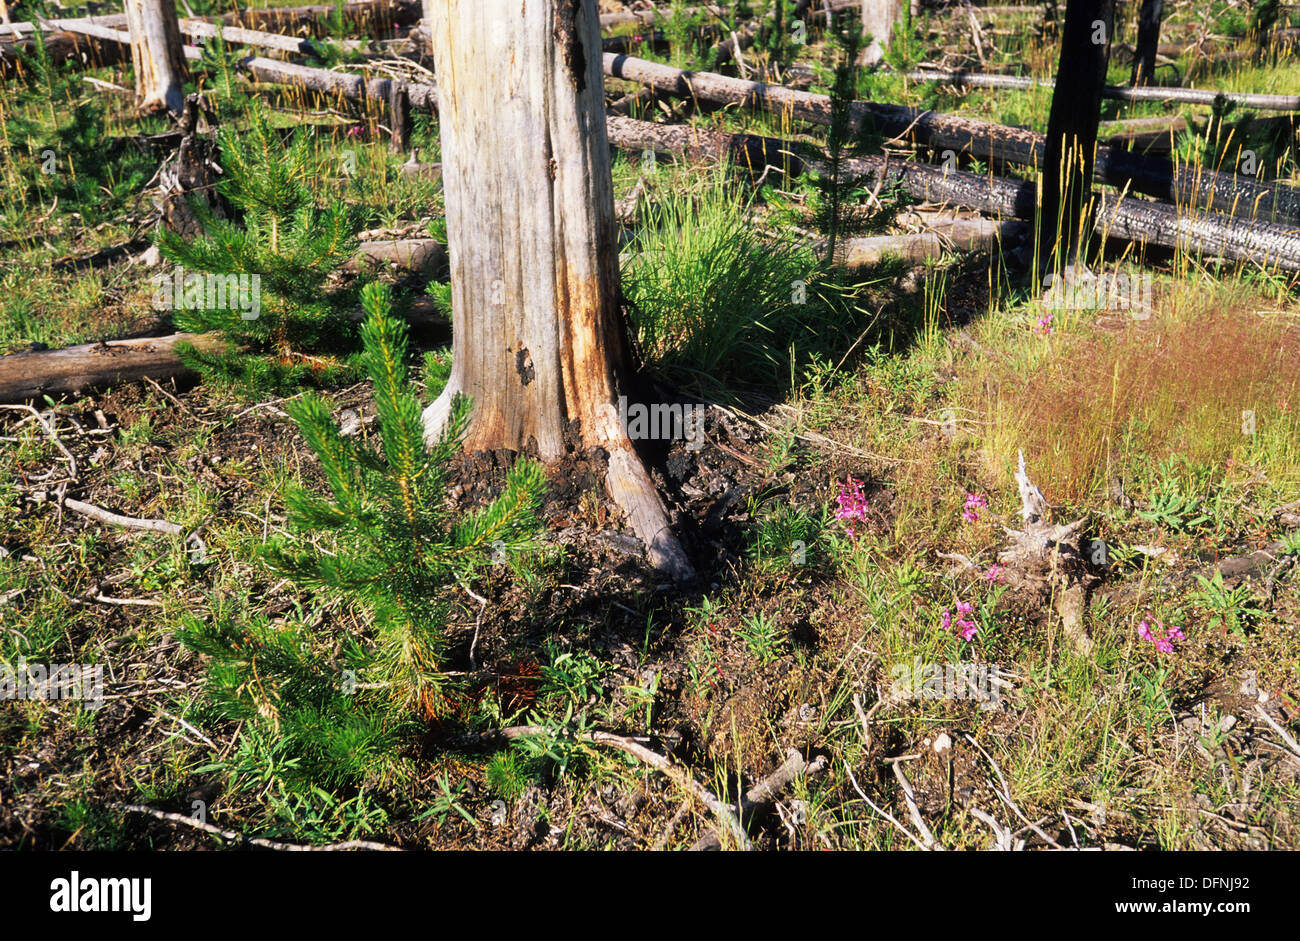 Elk265-1678 Wyoming, Yellowstone National Park, forest regrowth after 1988 fire - Stock Image